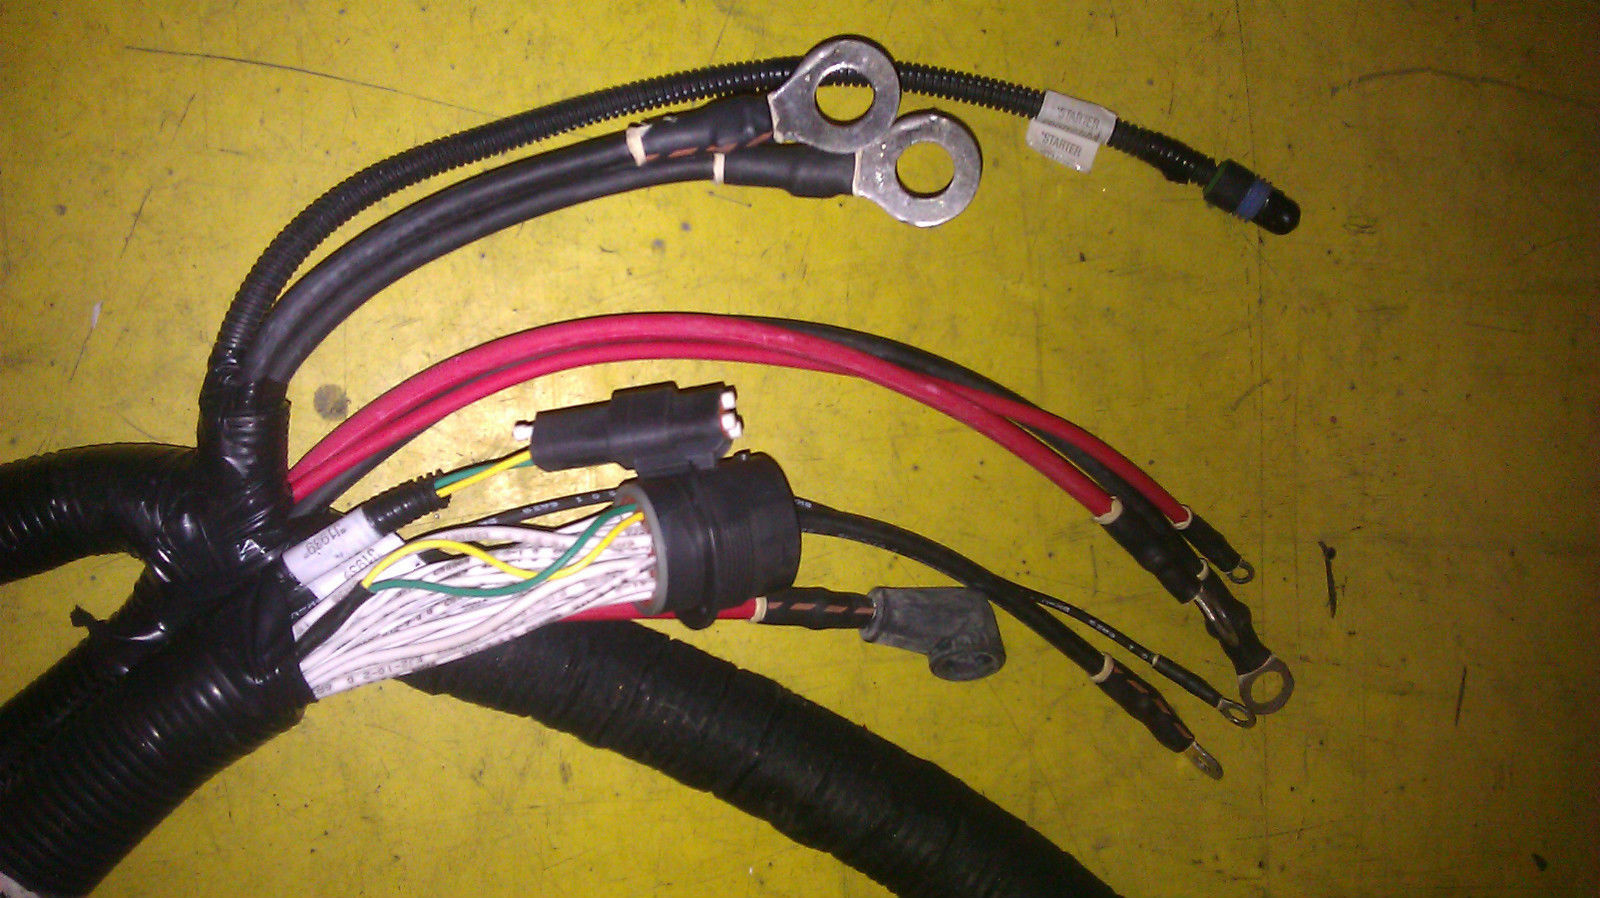 Mack Truck Wiring Harness Schematics Data Diagrams Diagram For Headlights Genuine 41mr5886m Other Business Industrial Rd688s Mru613